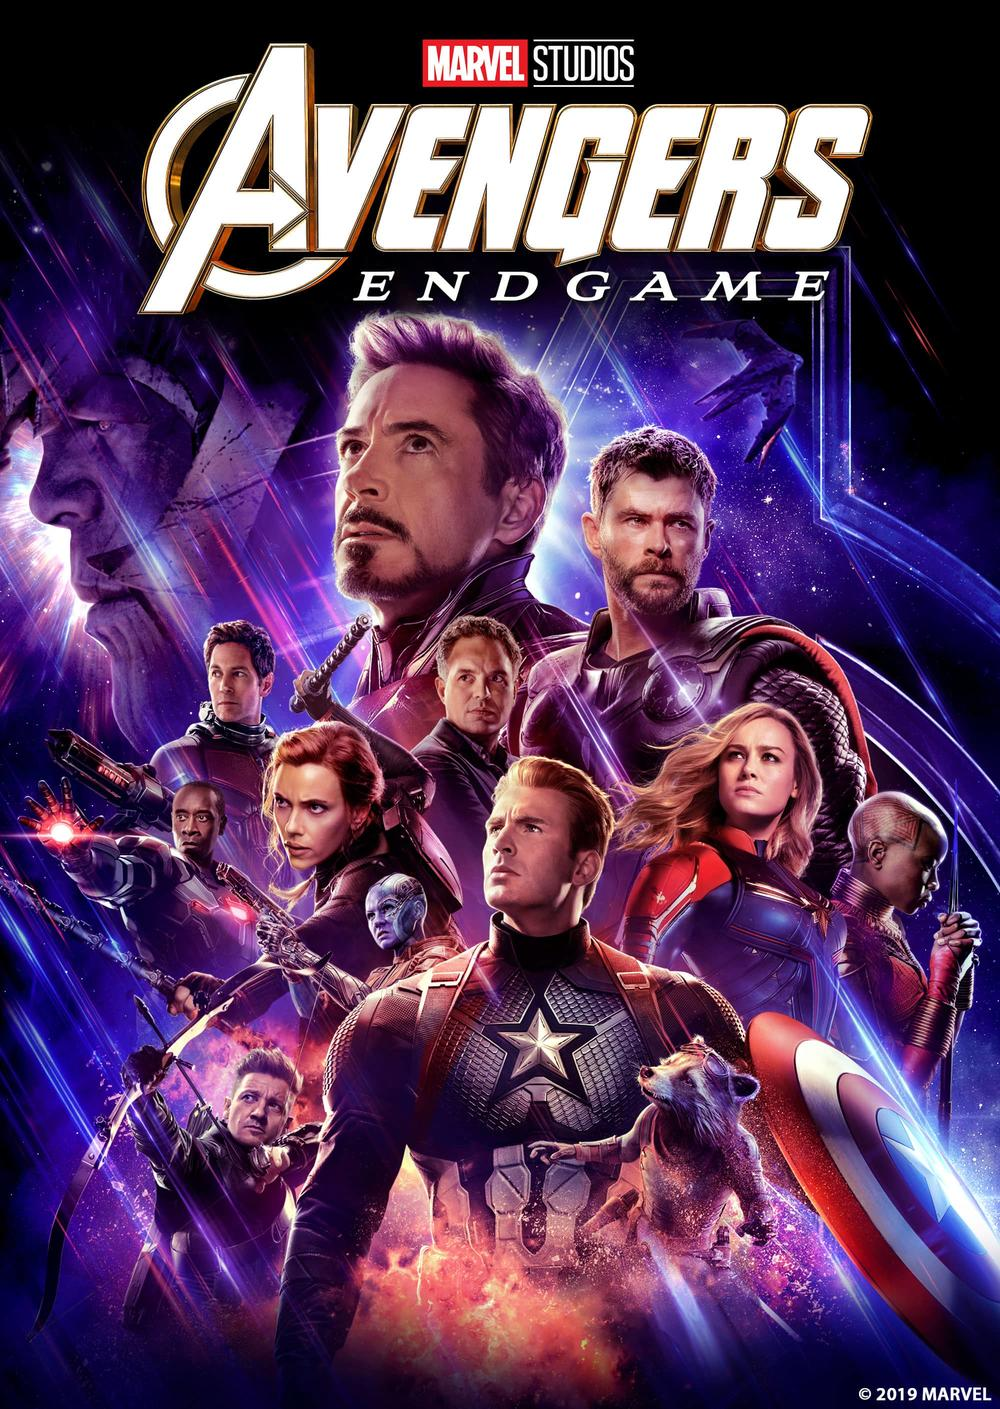 How to Watch 'Avengers: Endgame' Online in HD and 4K Ultra HD Now